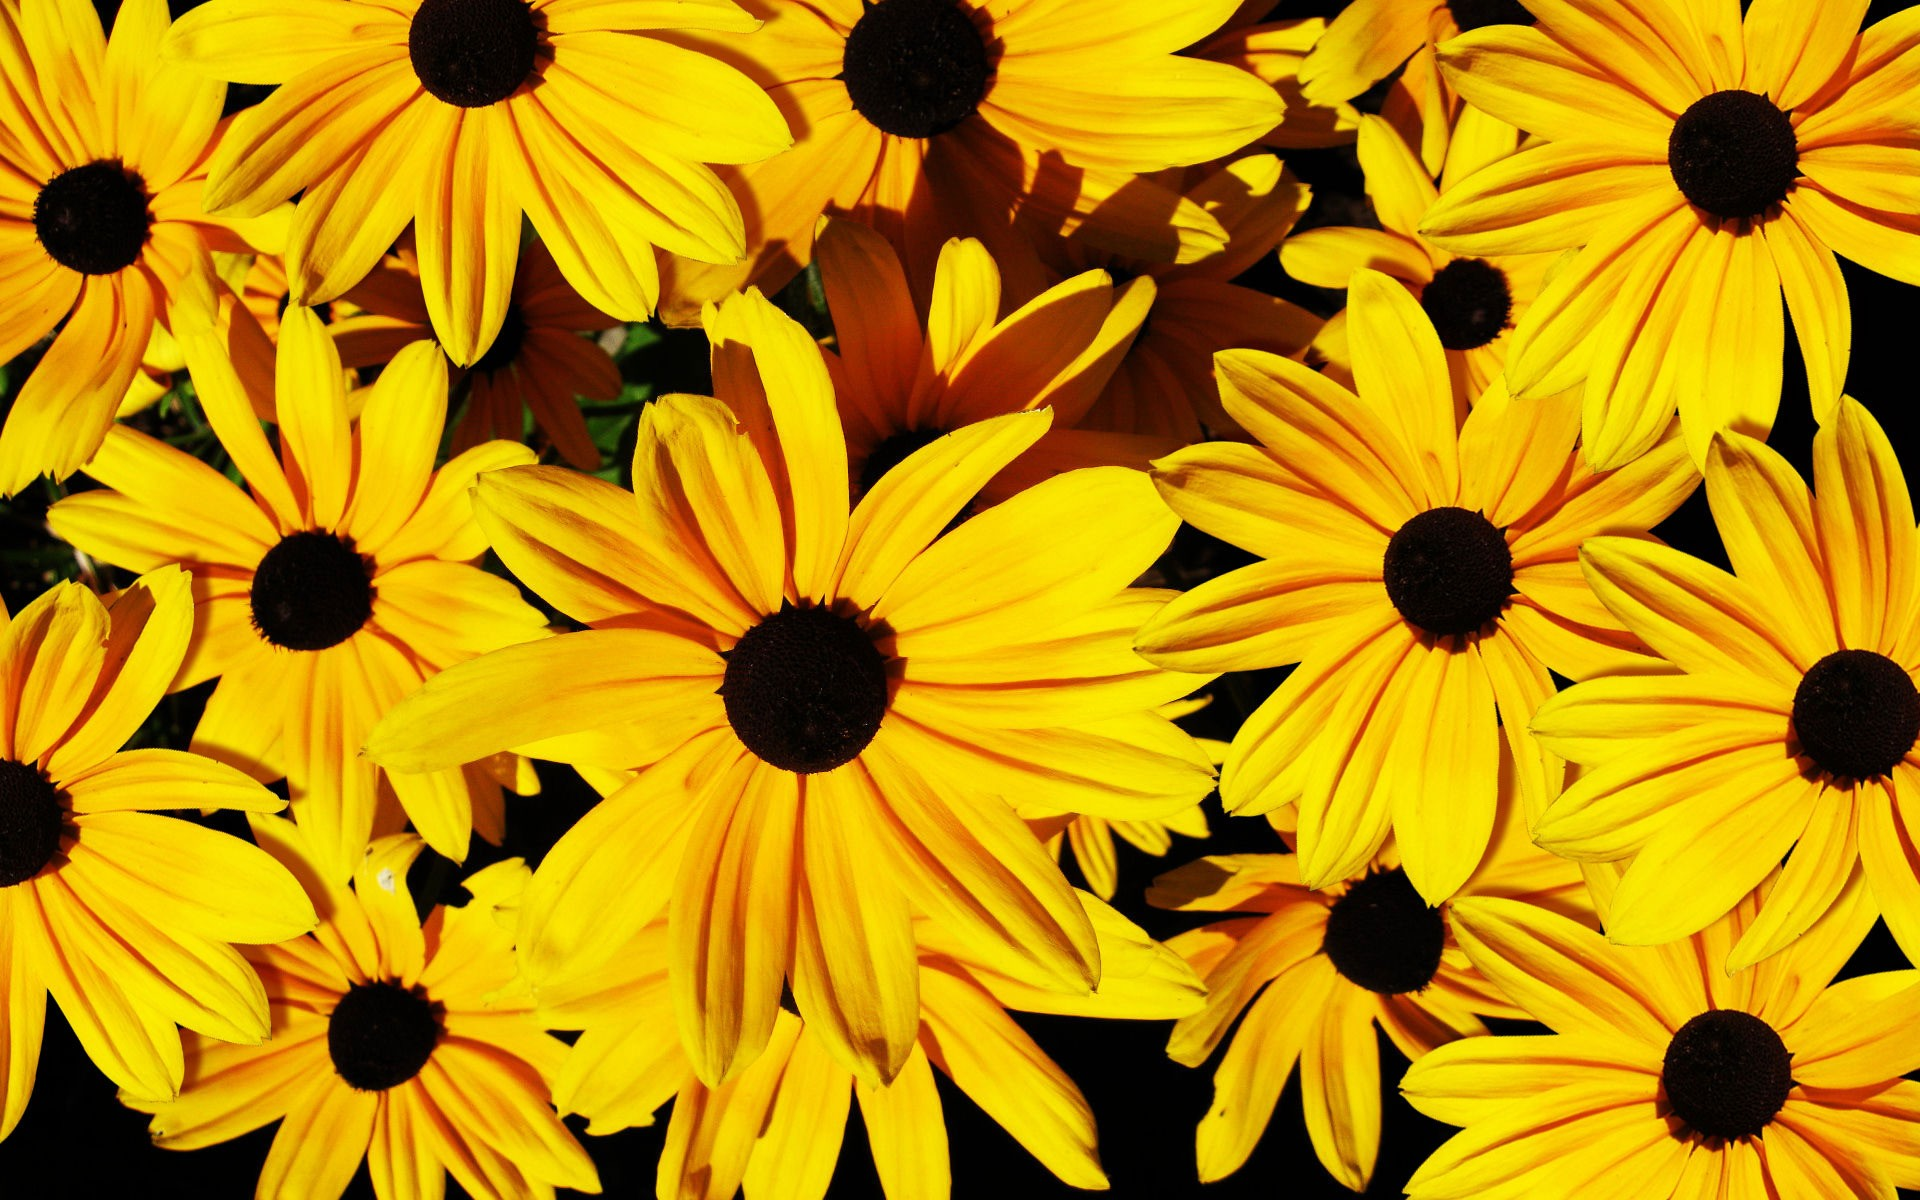 Yellow Flowers Backgrounds Wallpaper High Definition High